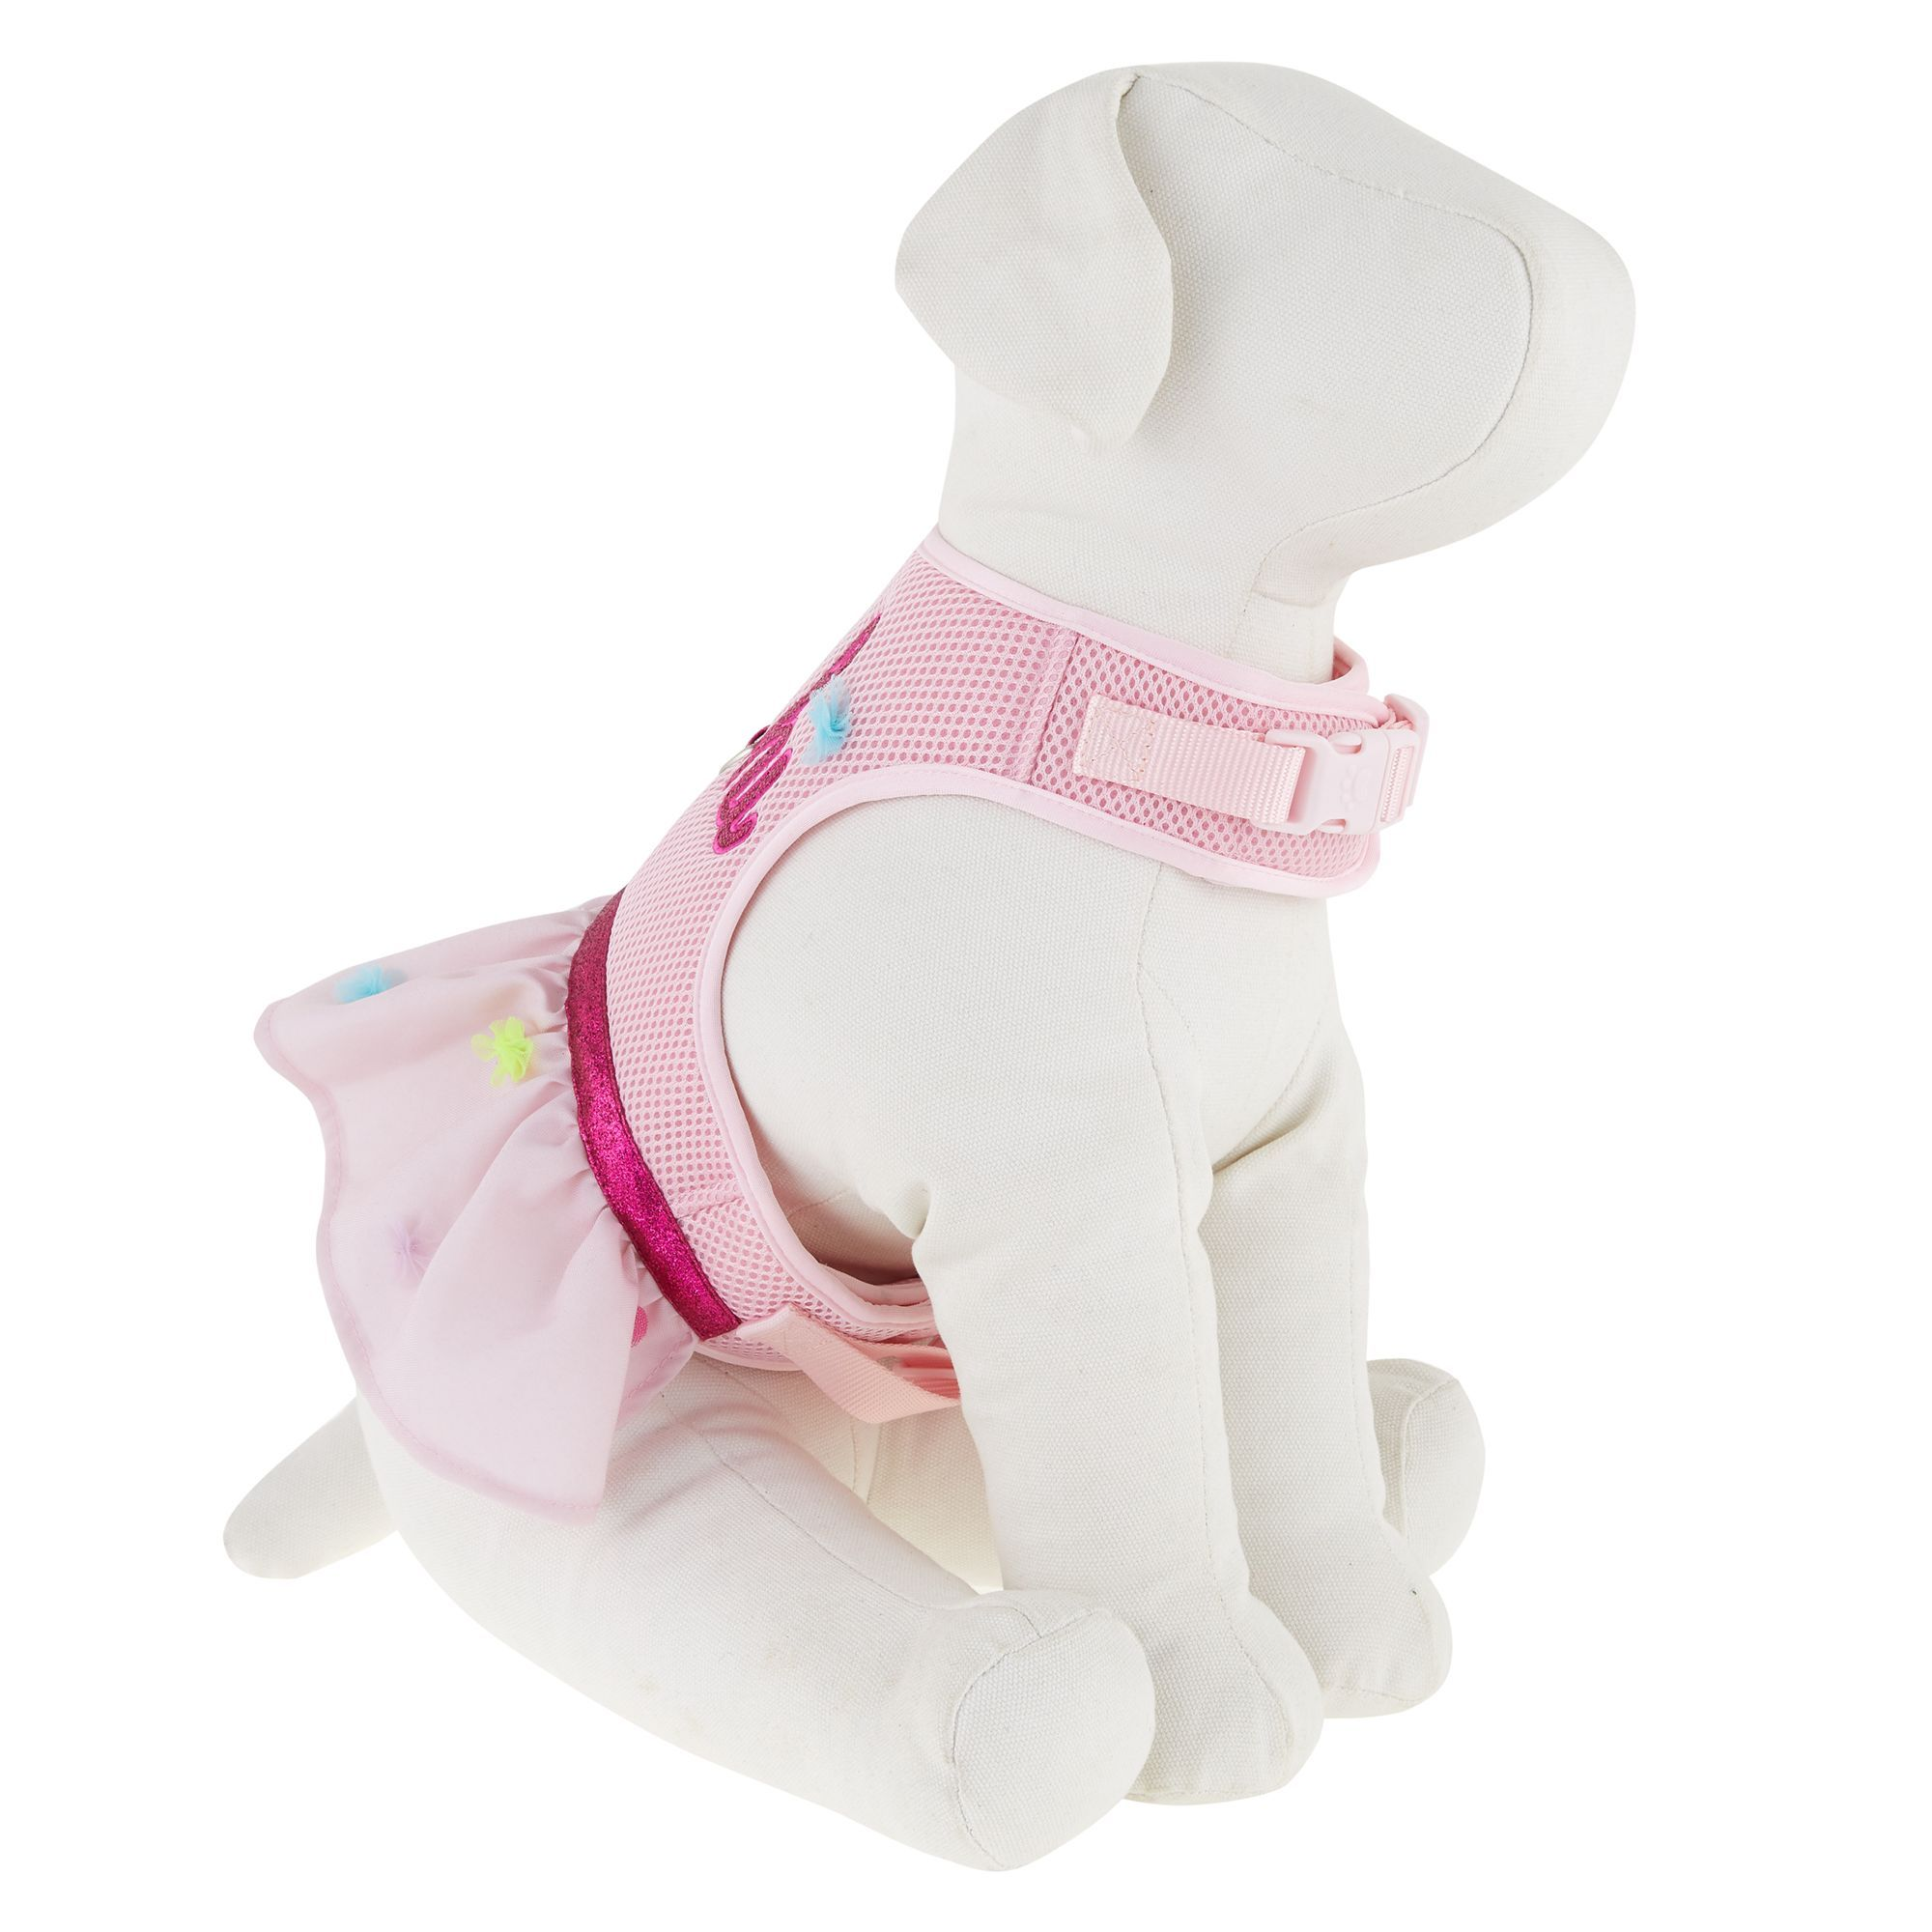 Top Paw Hi Skirt Vest Puppy Dog Harness Size X Small Dog